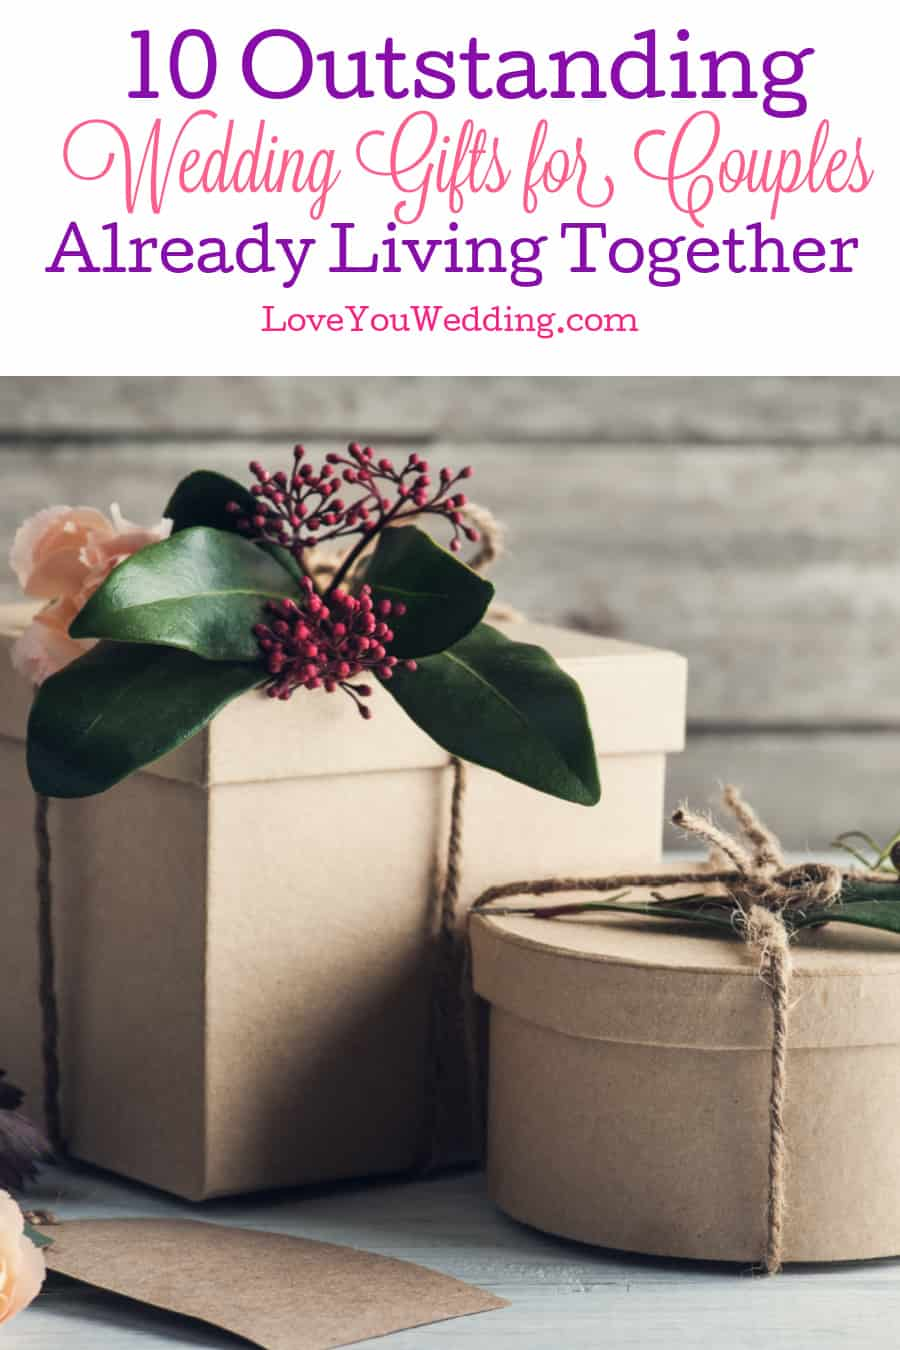 It's often hard to find gift ideas for couples already living together, but we think these top picks will really wow them! Take a look!